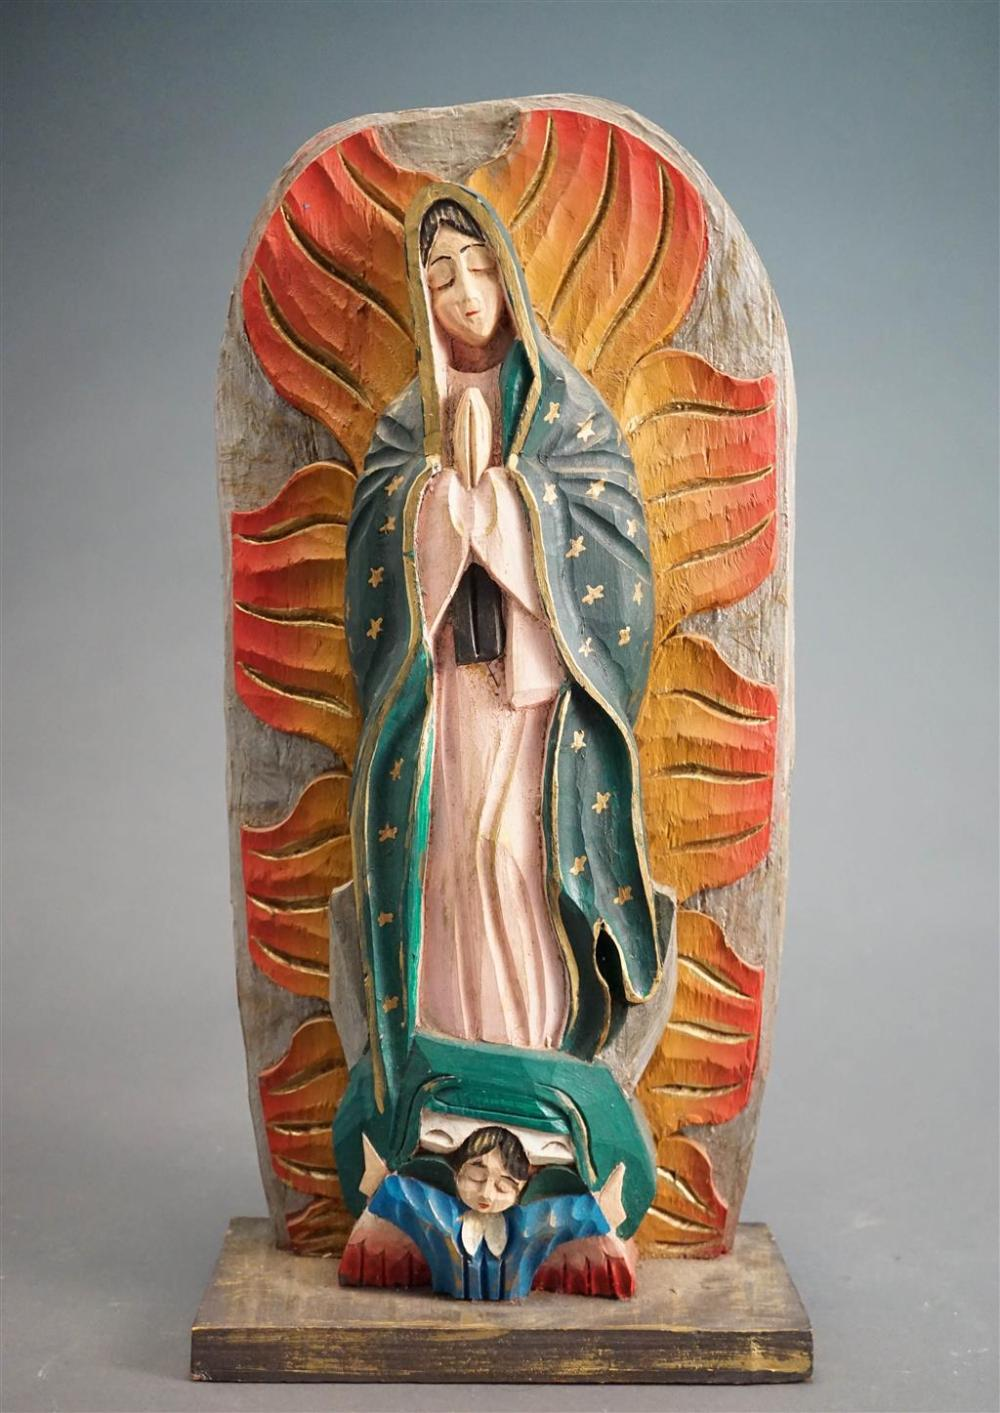 Santos Type Painted Carved Wood Niche Sculpture for the Elevation of a Female Saint, H: 18-1/2 in